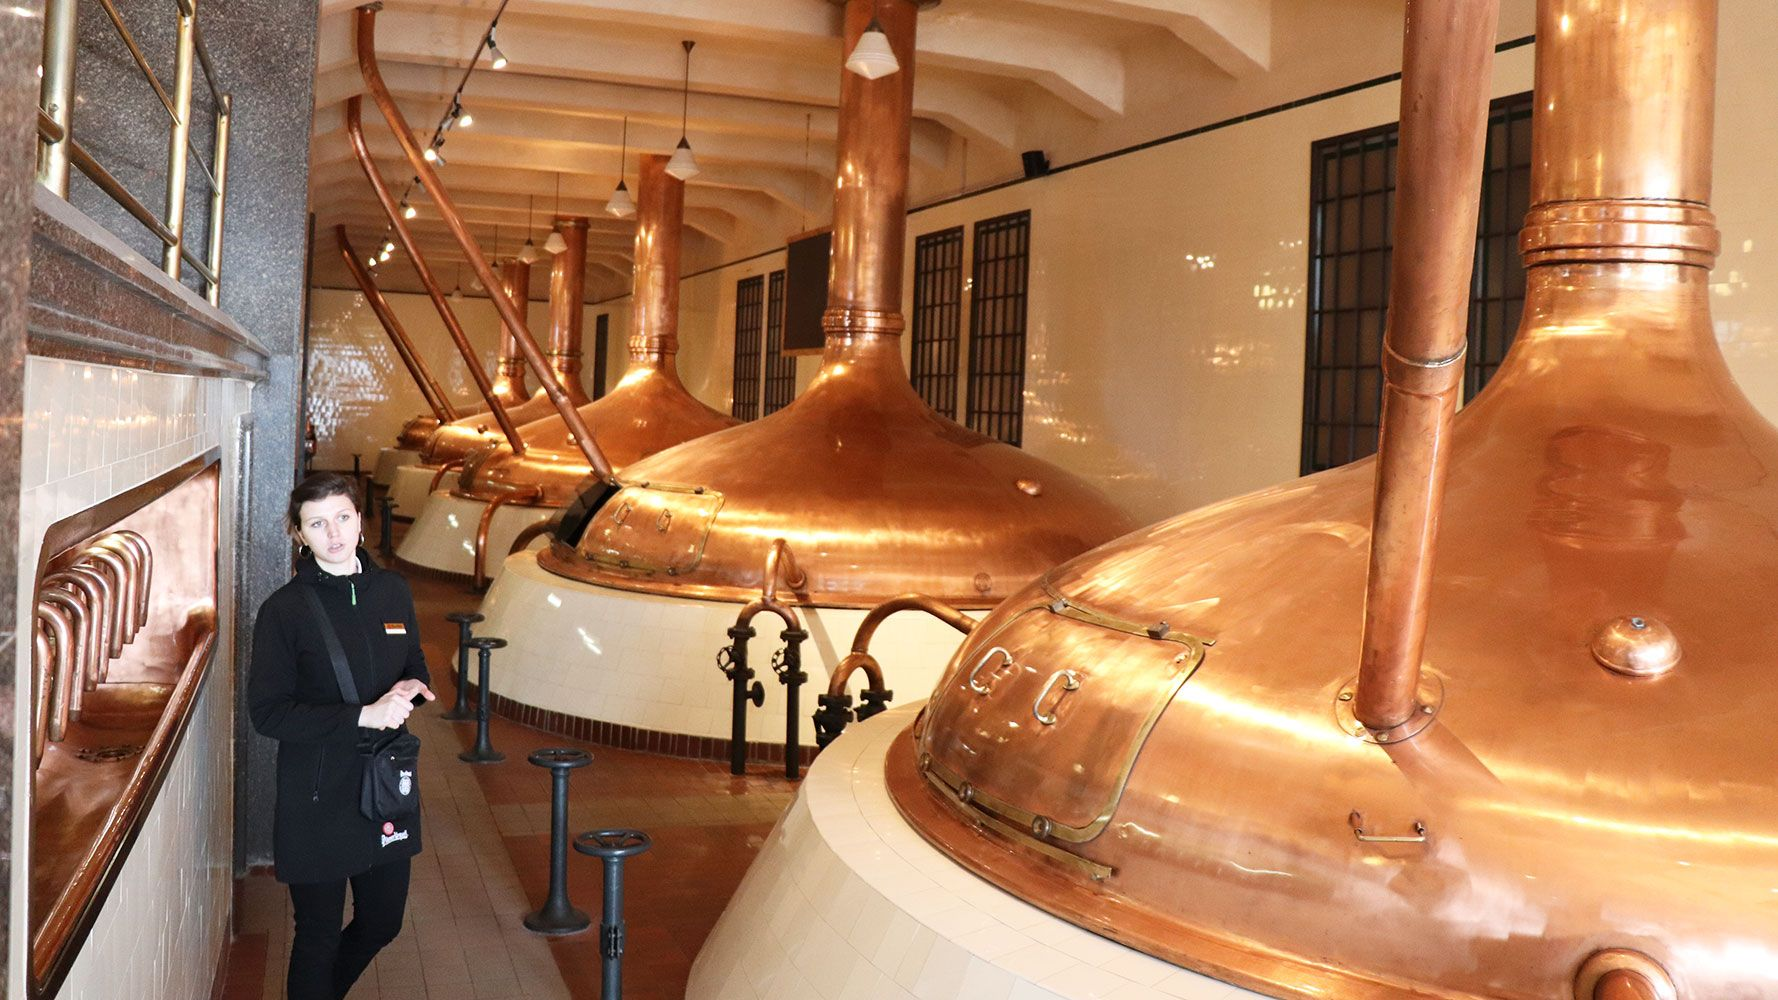 Pilsen brewery, guided tour